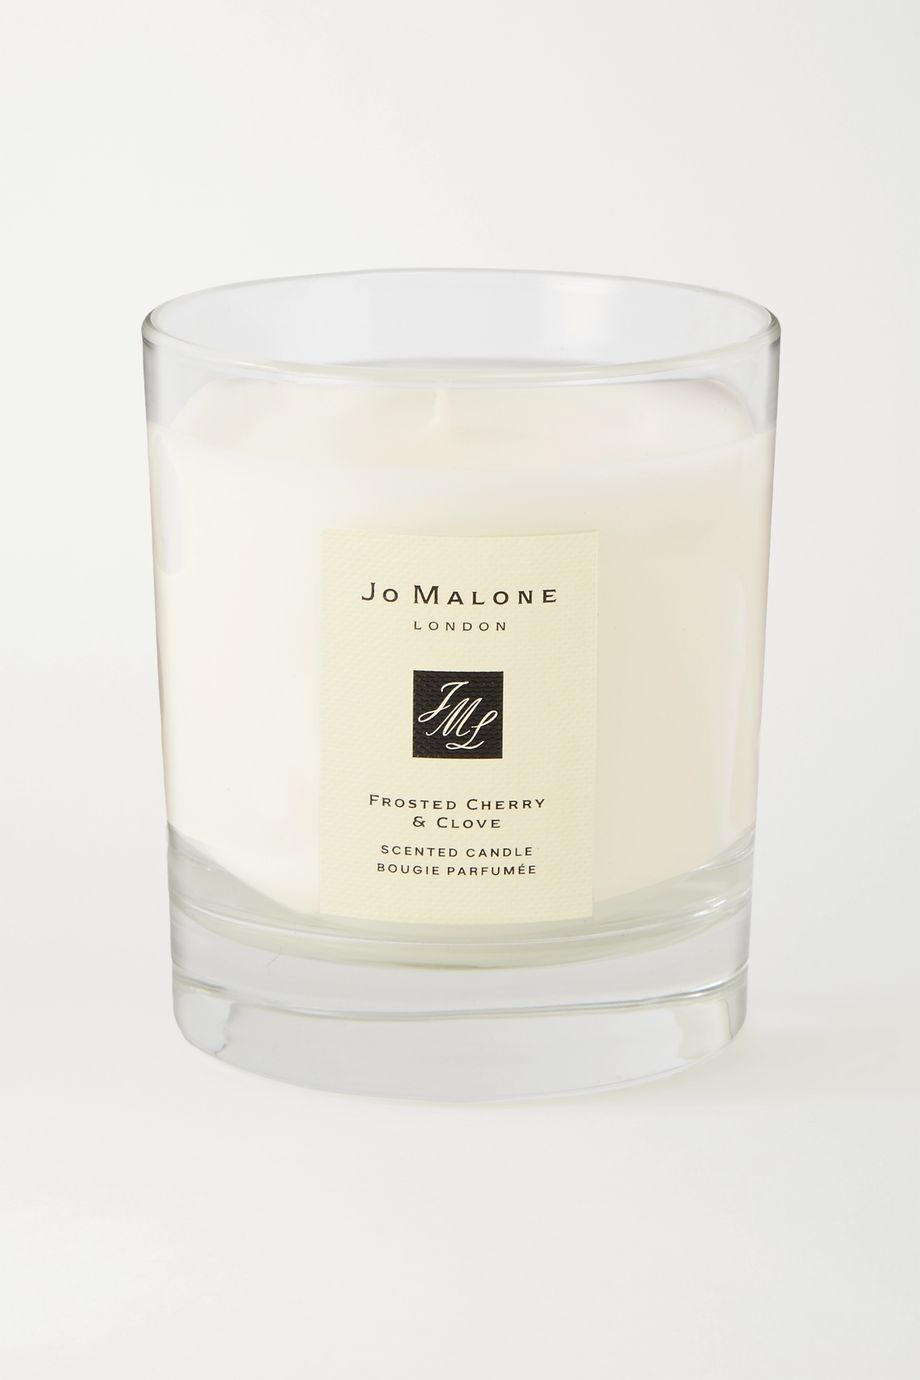 Jo Malone London Frosted Cherry & Clove Scented Home Candle, 200g